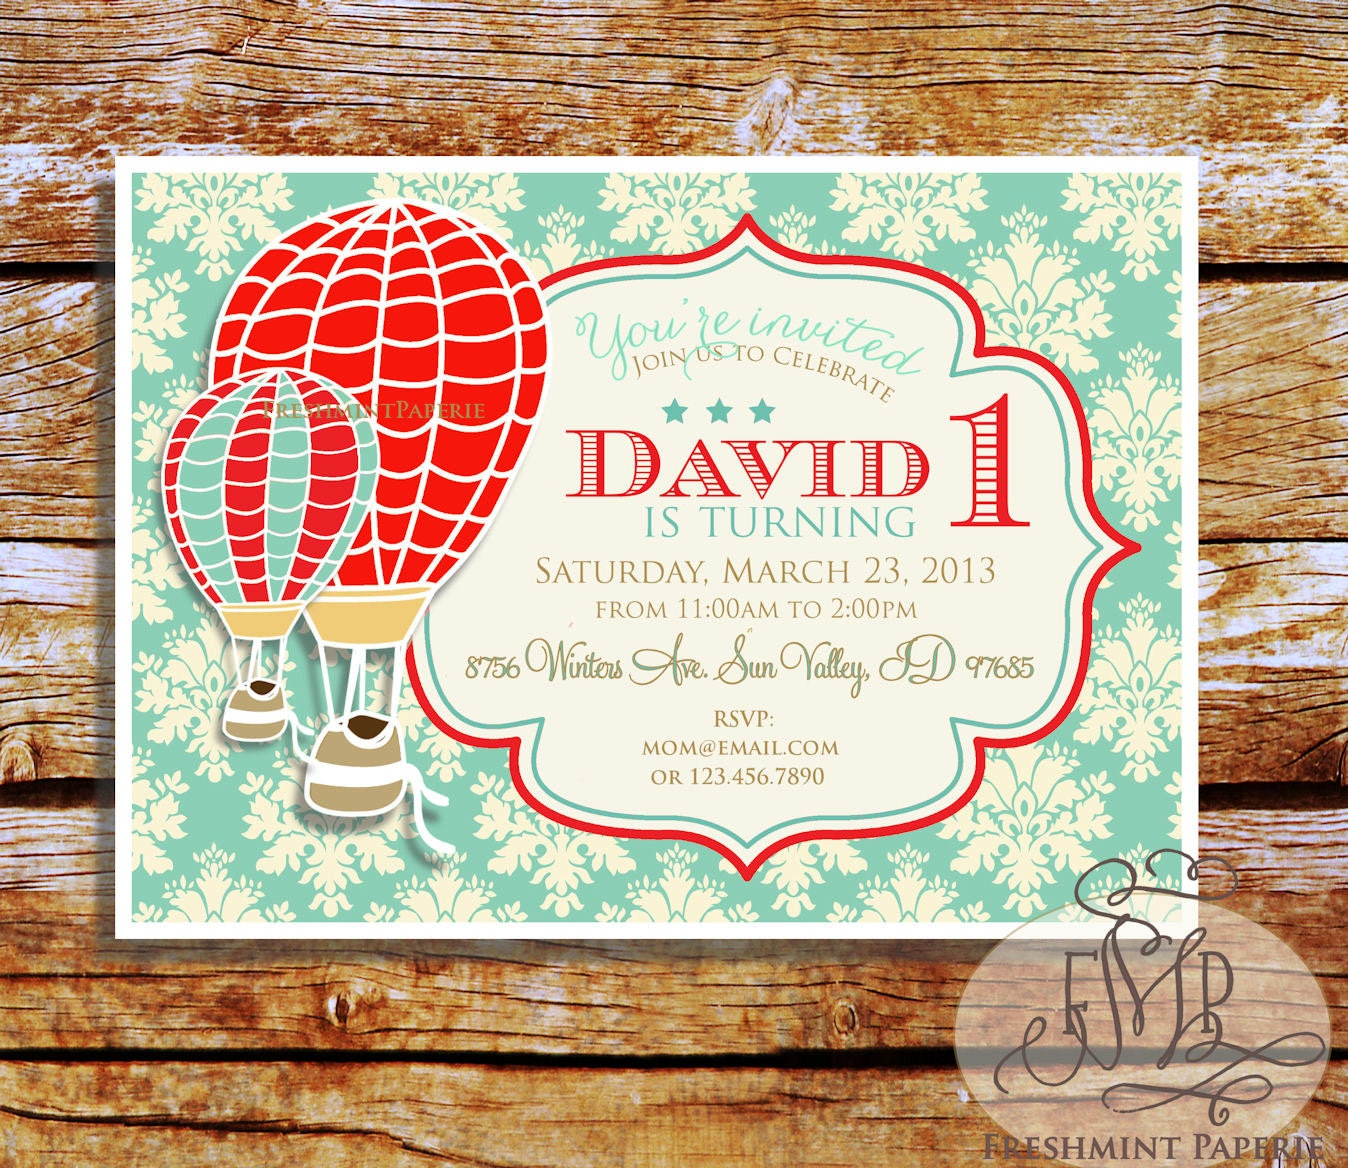 Printable invitations hot air balloon invitation vintage